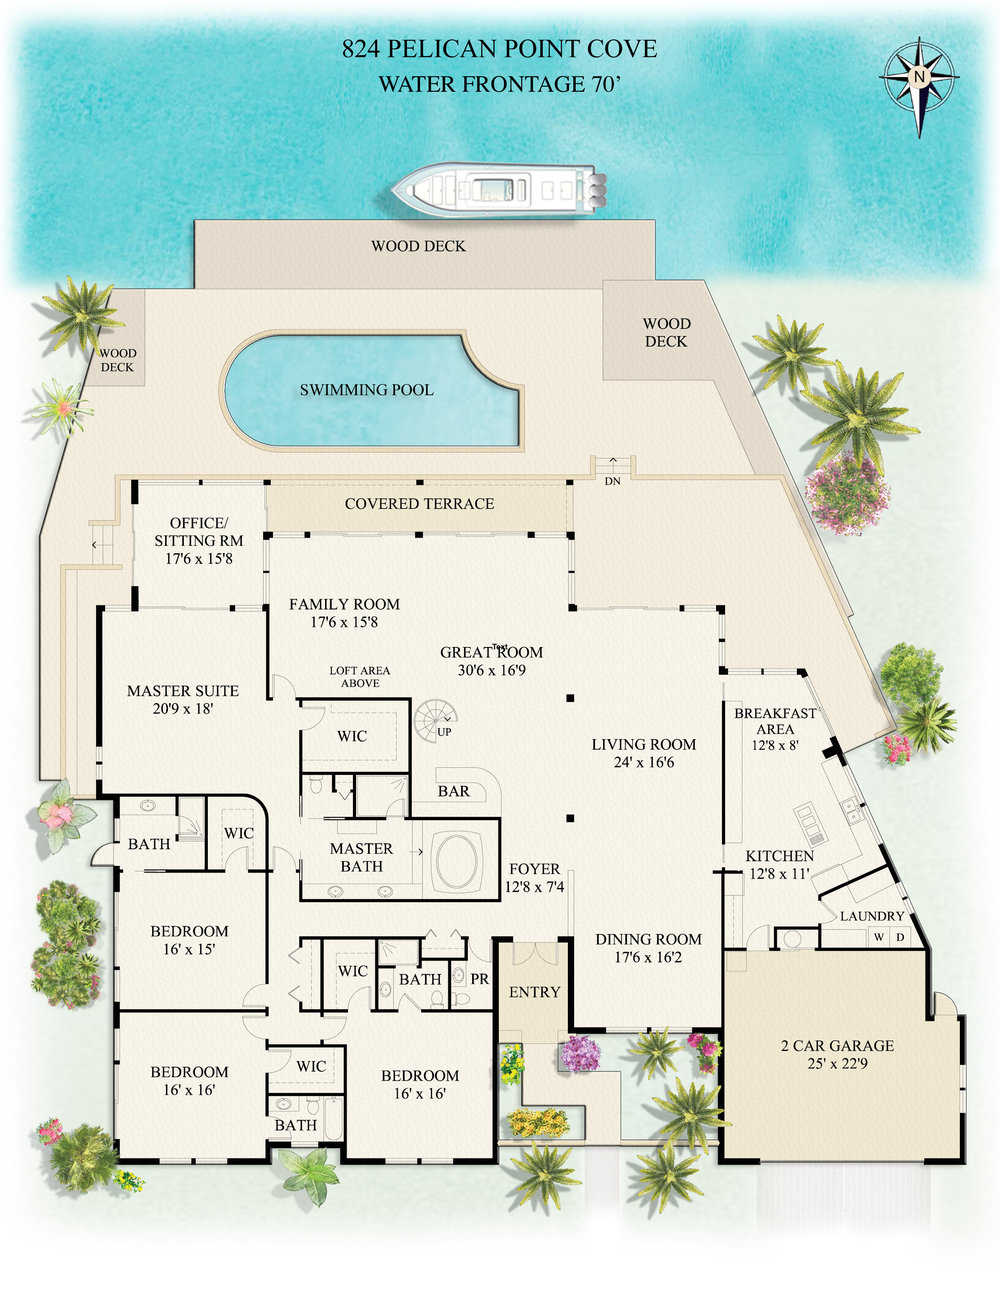 824 PELICAN POINT COVE color.jpg